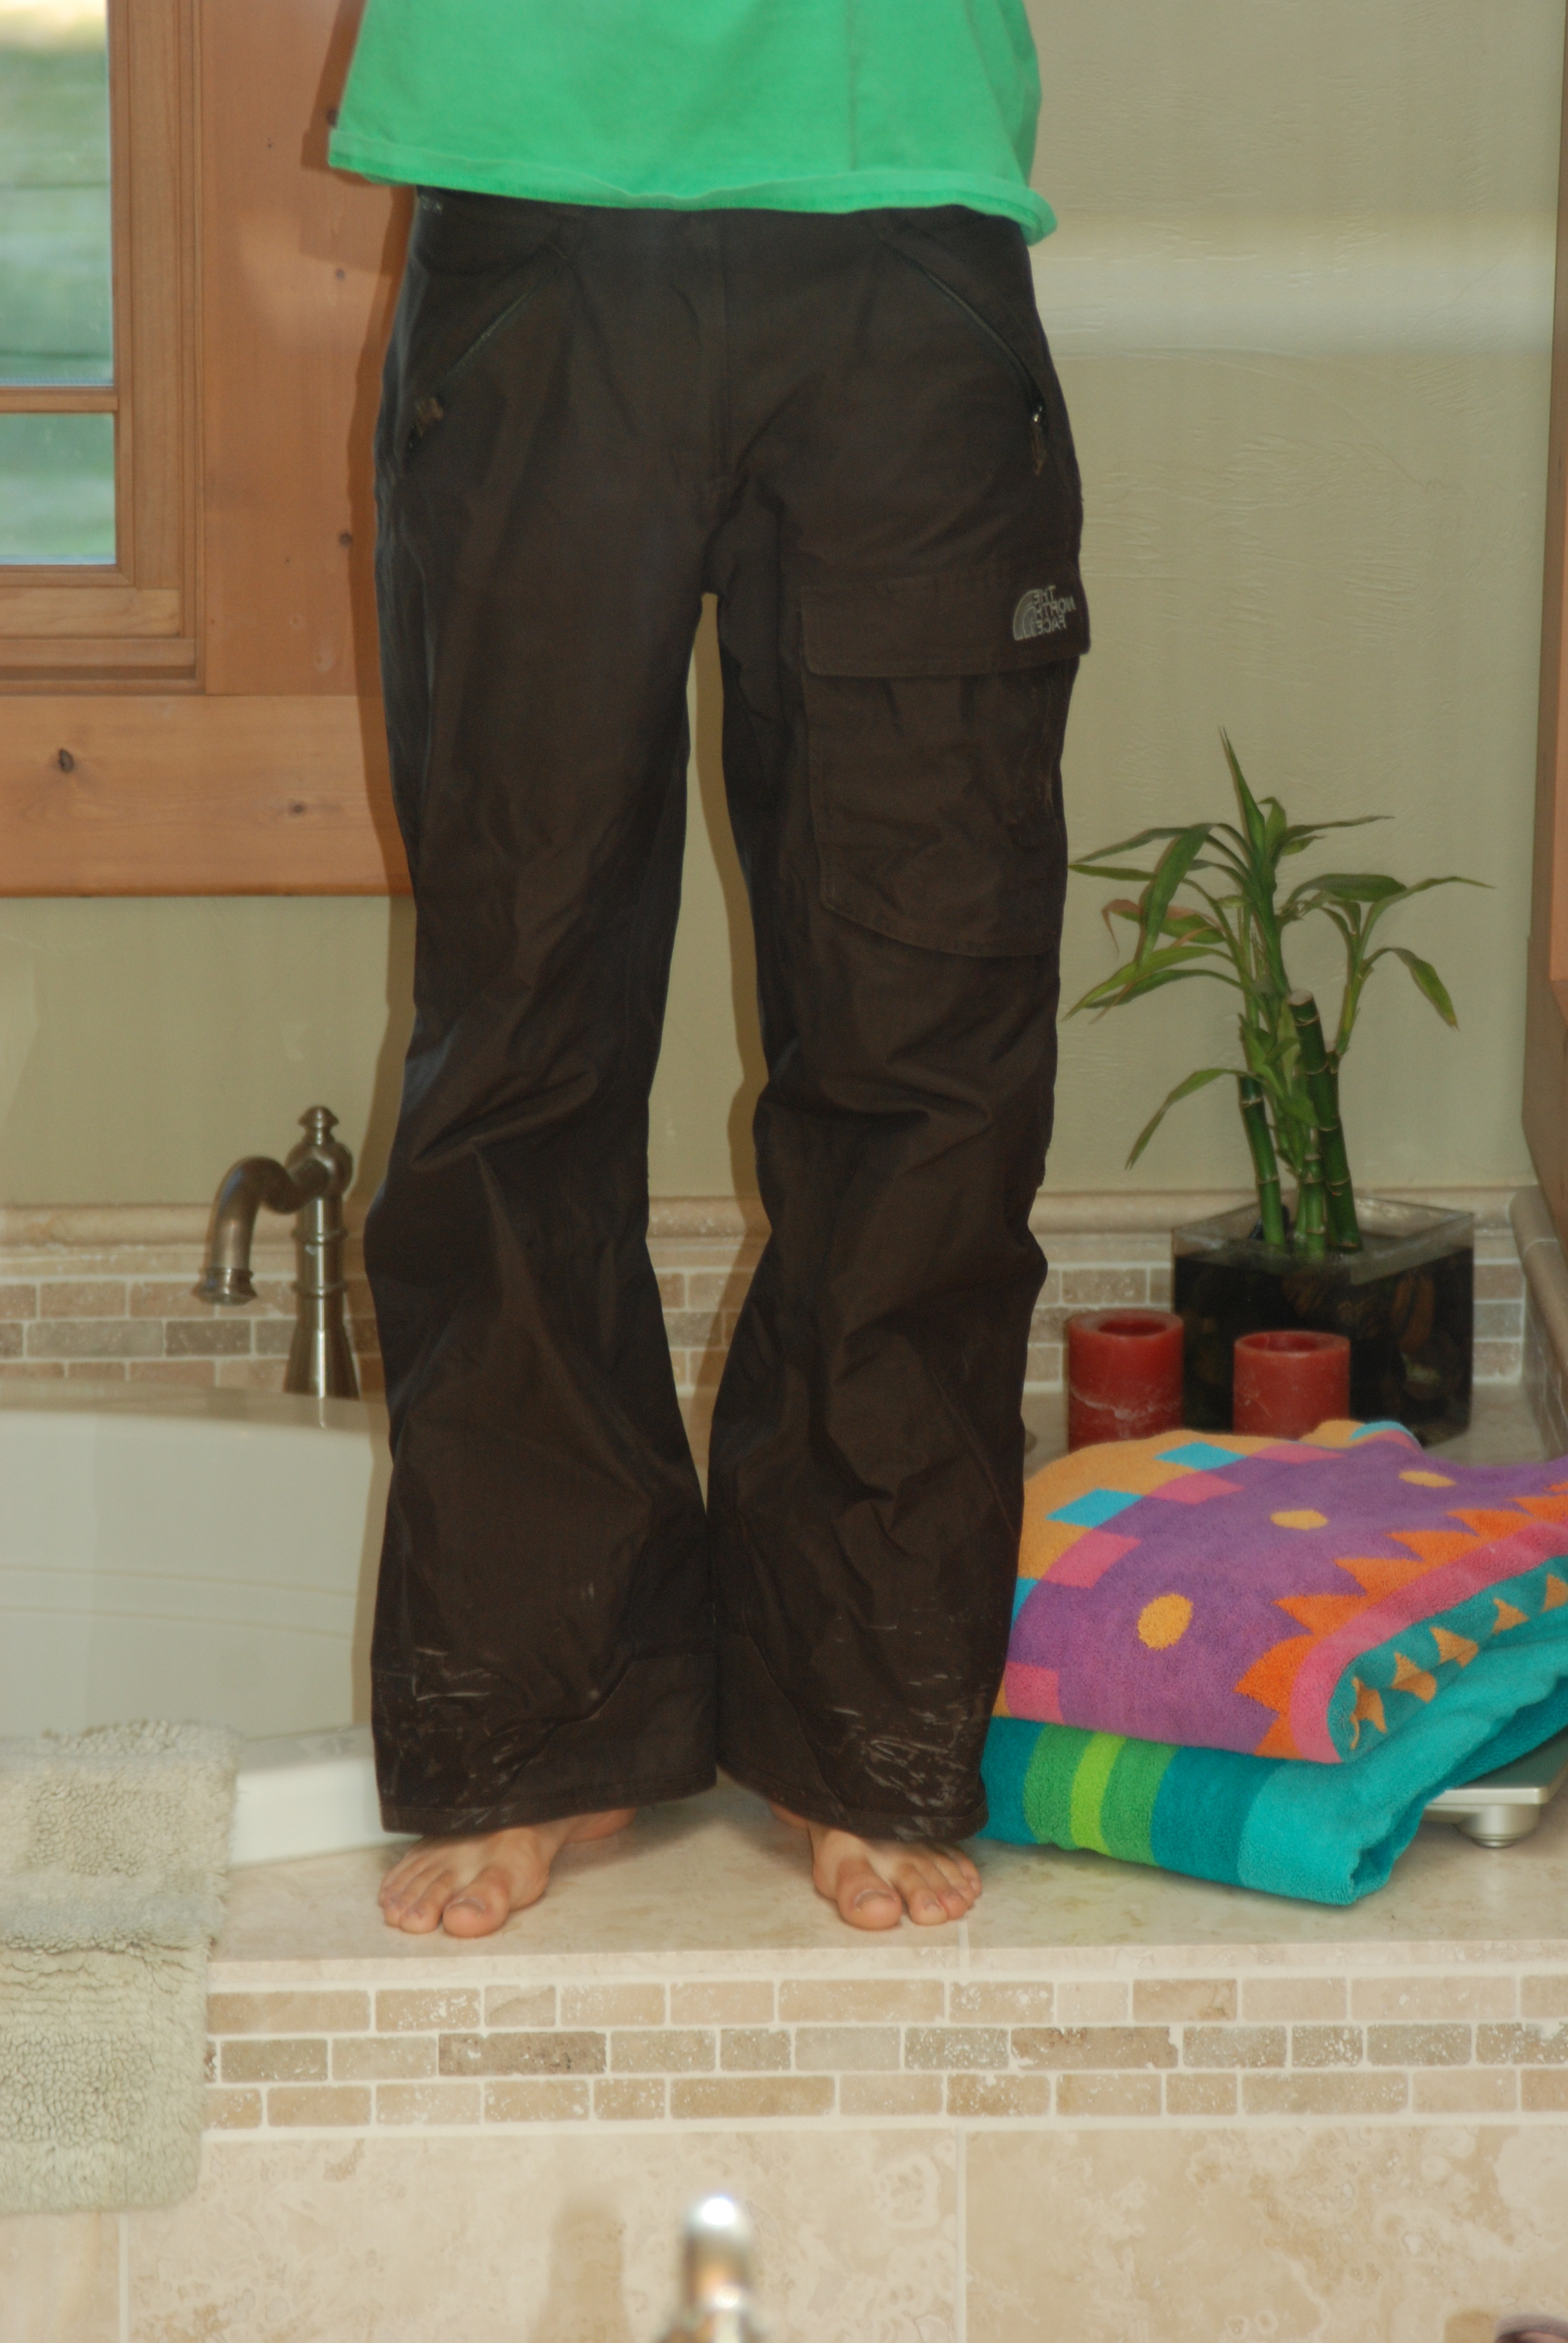 North face pant